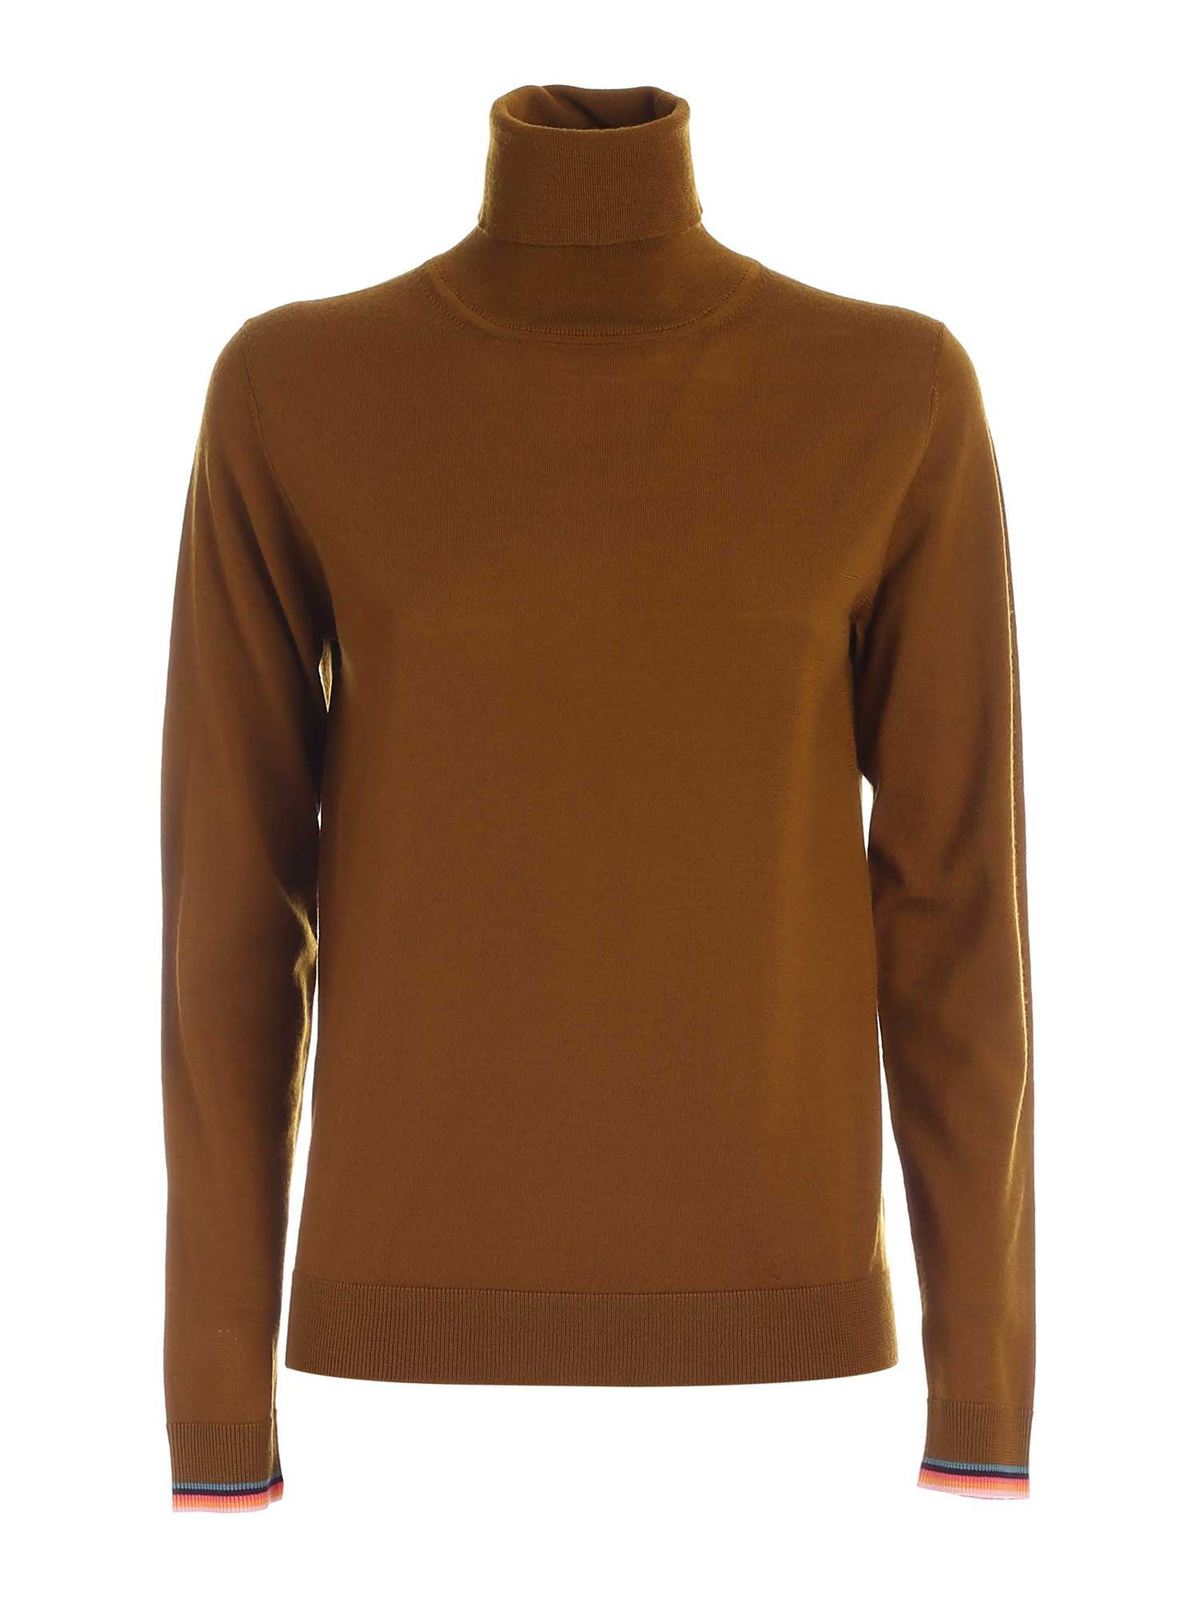 Paul Smith SWIRL DETAIL TURTLENECK IN MUSTARD COLOR